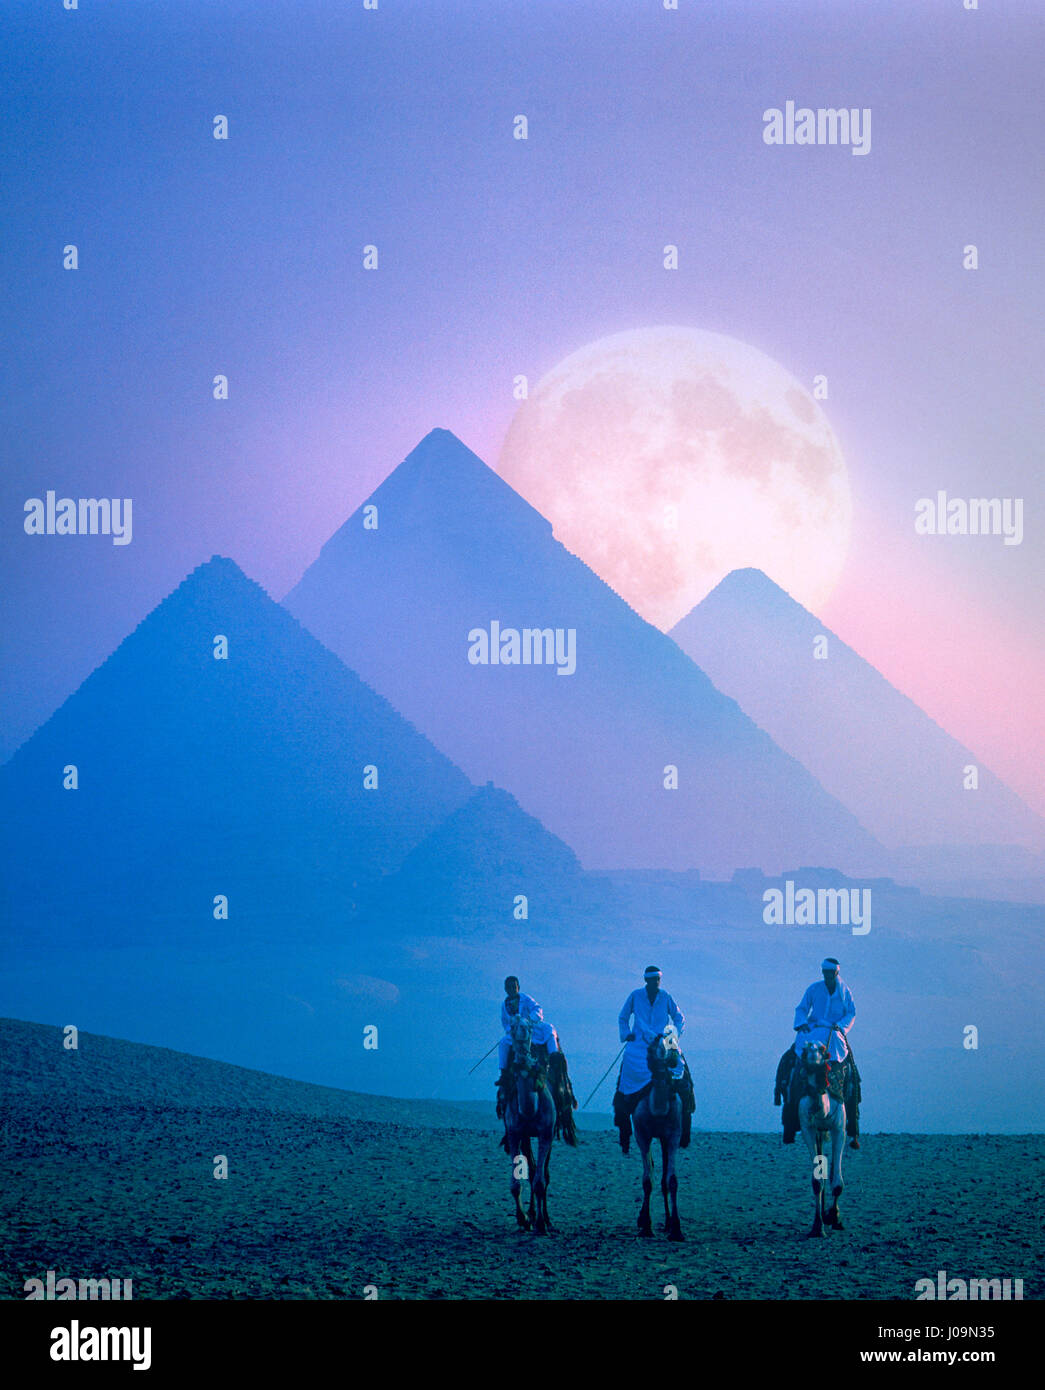 Full moon rising behind the Pyramids, Giza, Cairo, Egypt - Stock Image